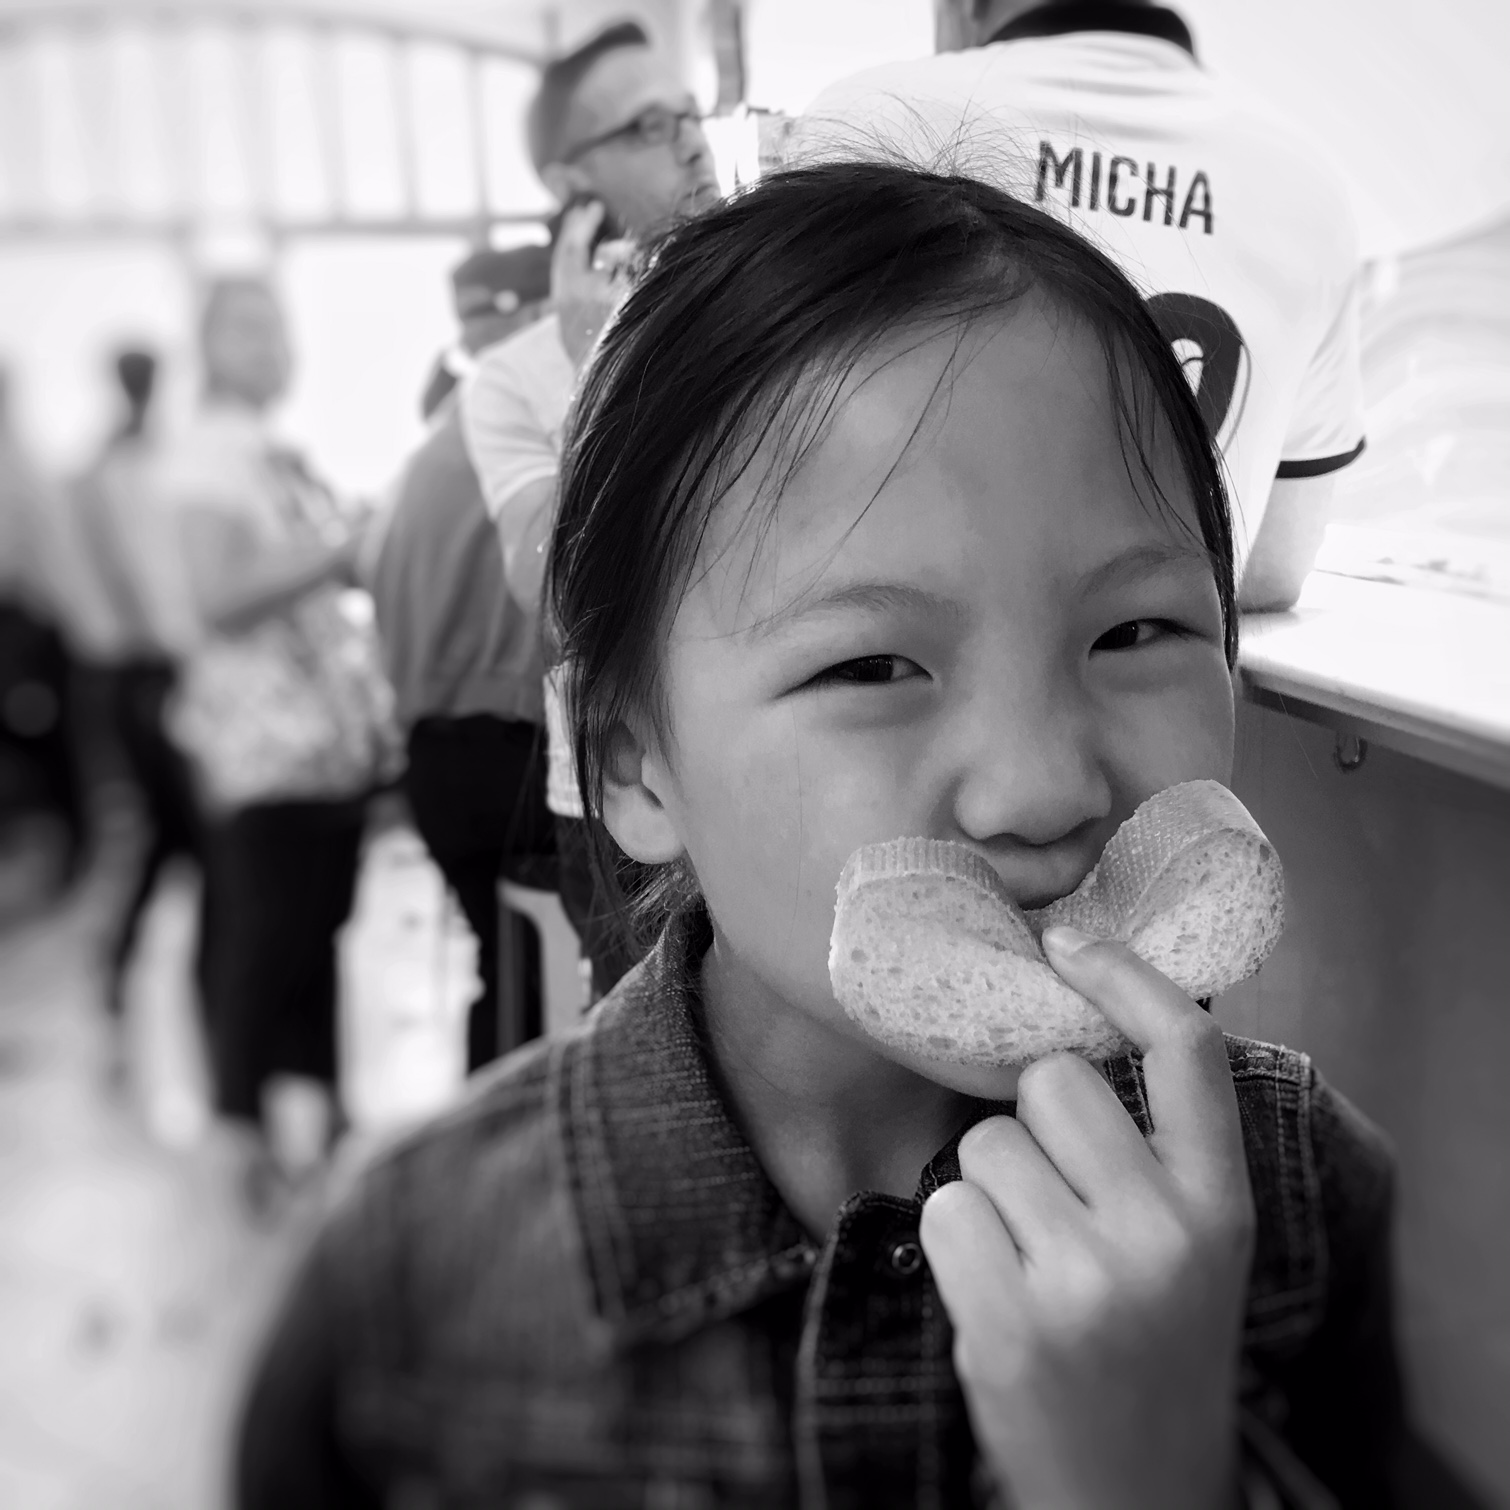 Keira with a bread smile